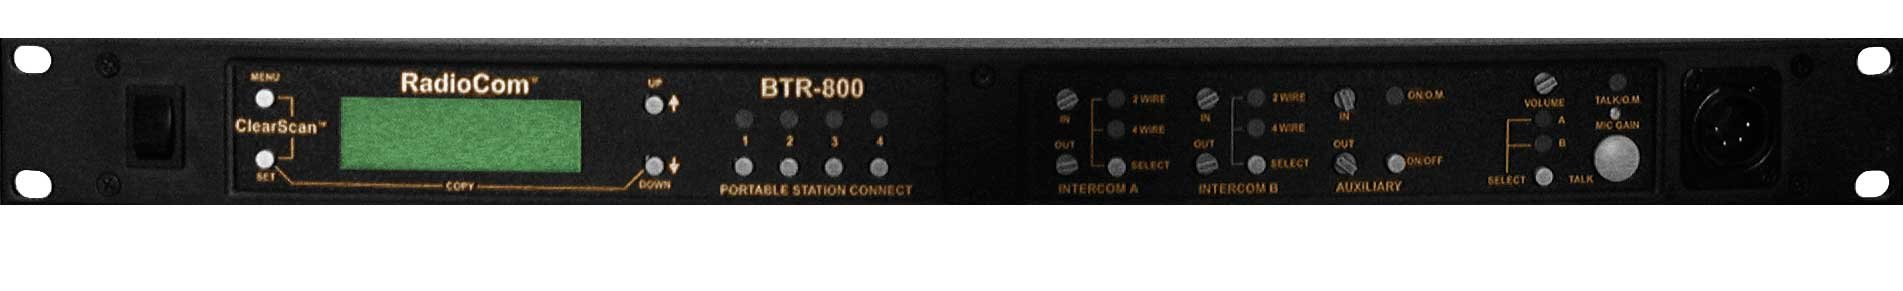 UHF Radiocom Base, 4 Pin Male